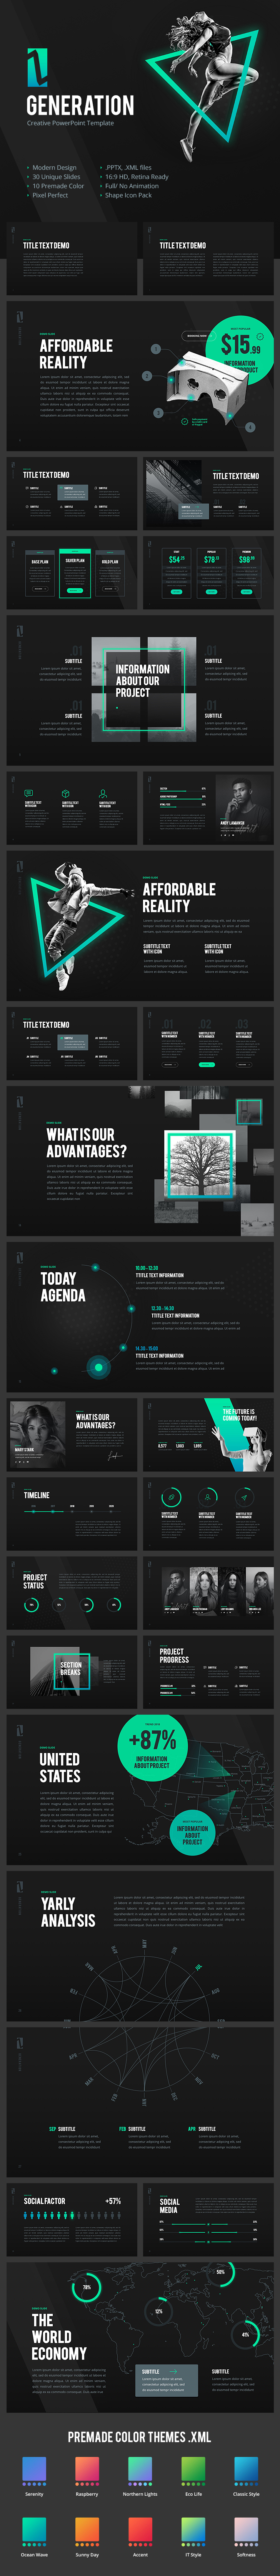 Generation z creative powerpoint template 30 unique slides 10 pre generation z creative powerpoint template 30 unique slides 10 pre made color toneelgroepblik Images